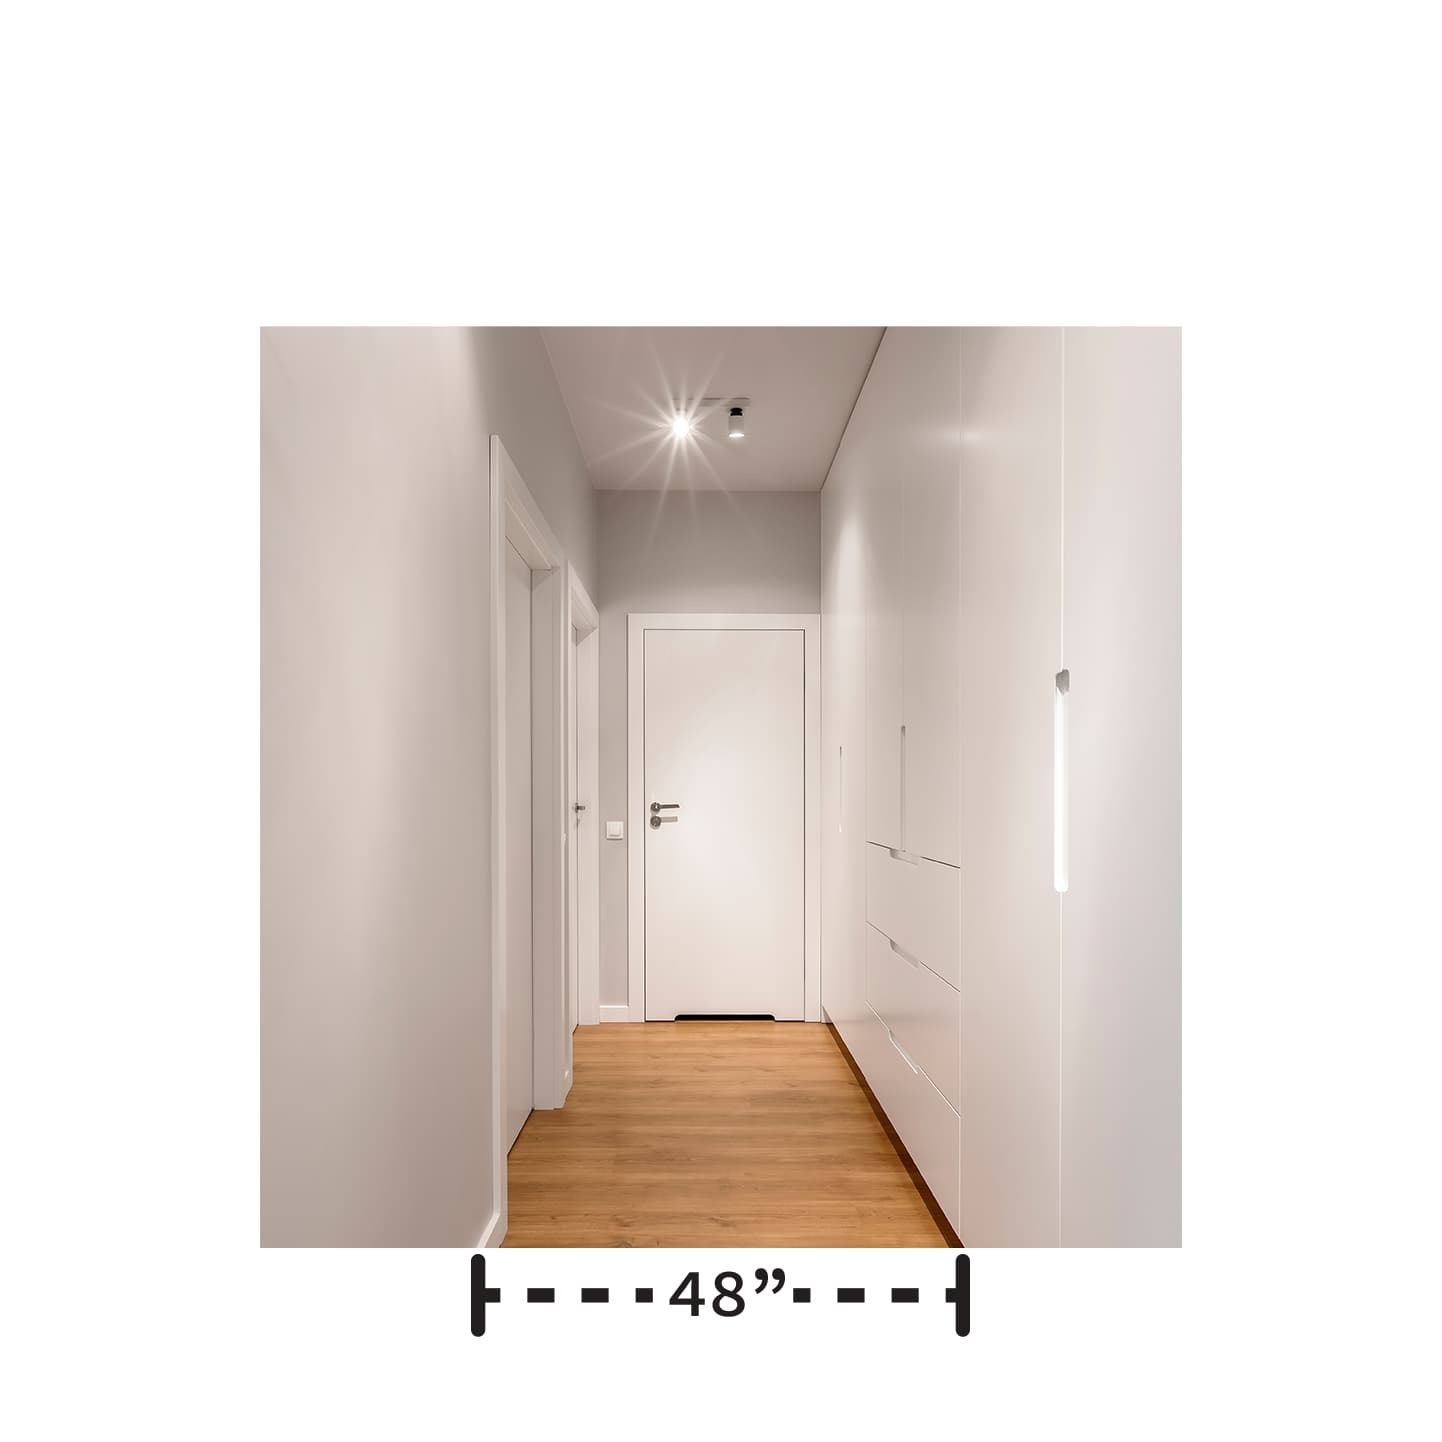 entrance is 48 inch wide